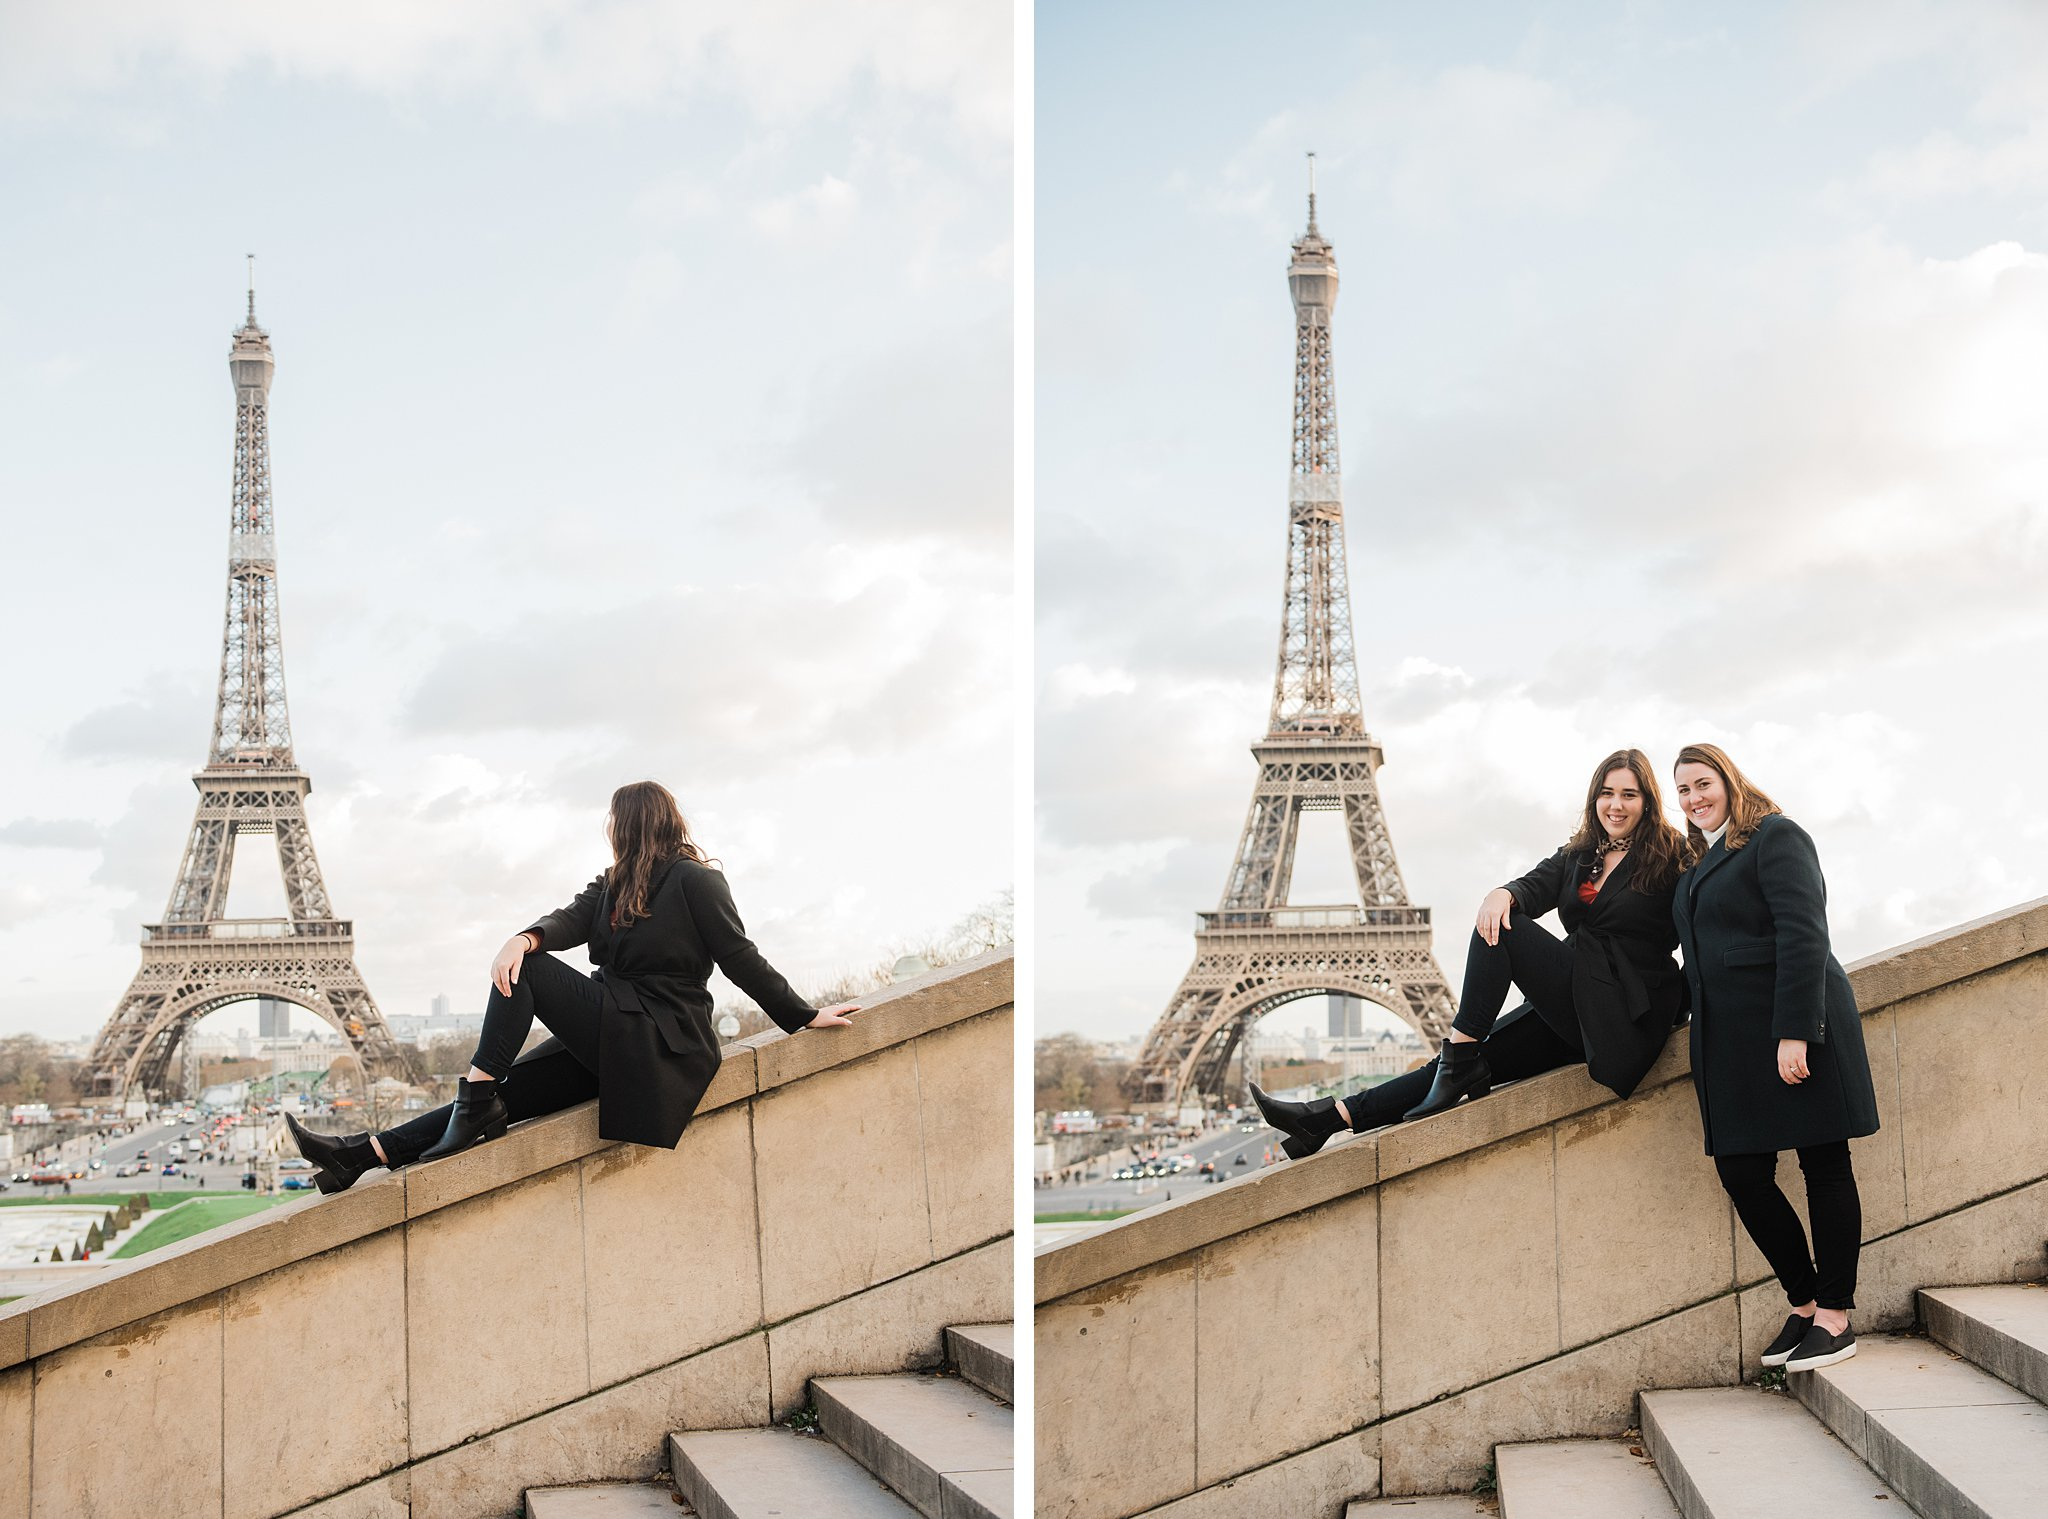 Two sisters on a staircase during a Paris winter photo shoot, as a study abroad activity and Christmas gift